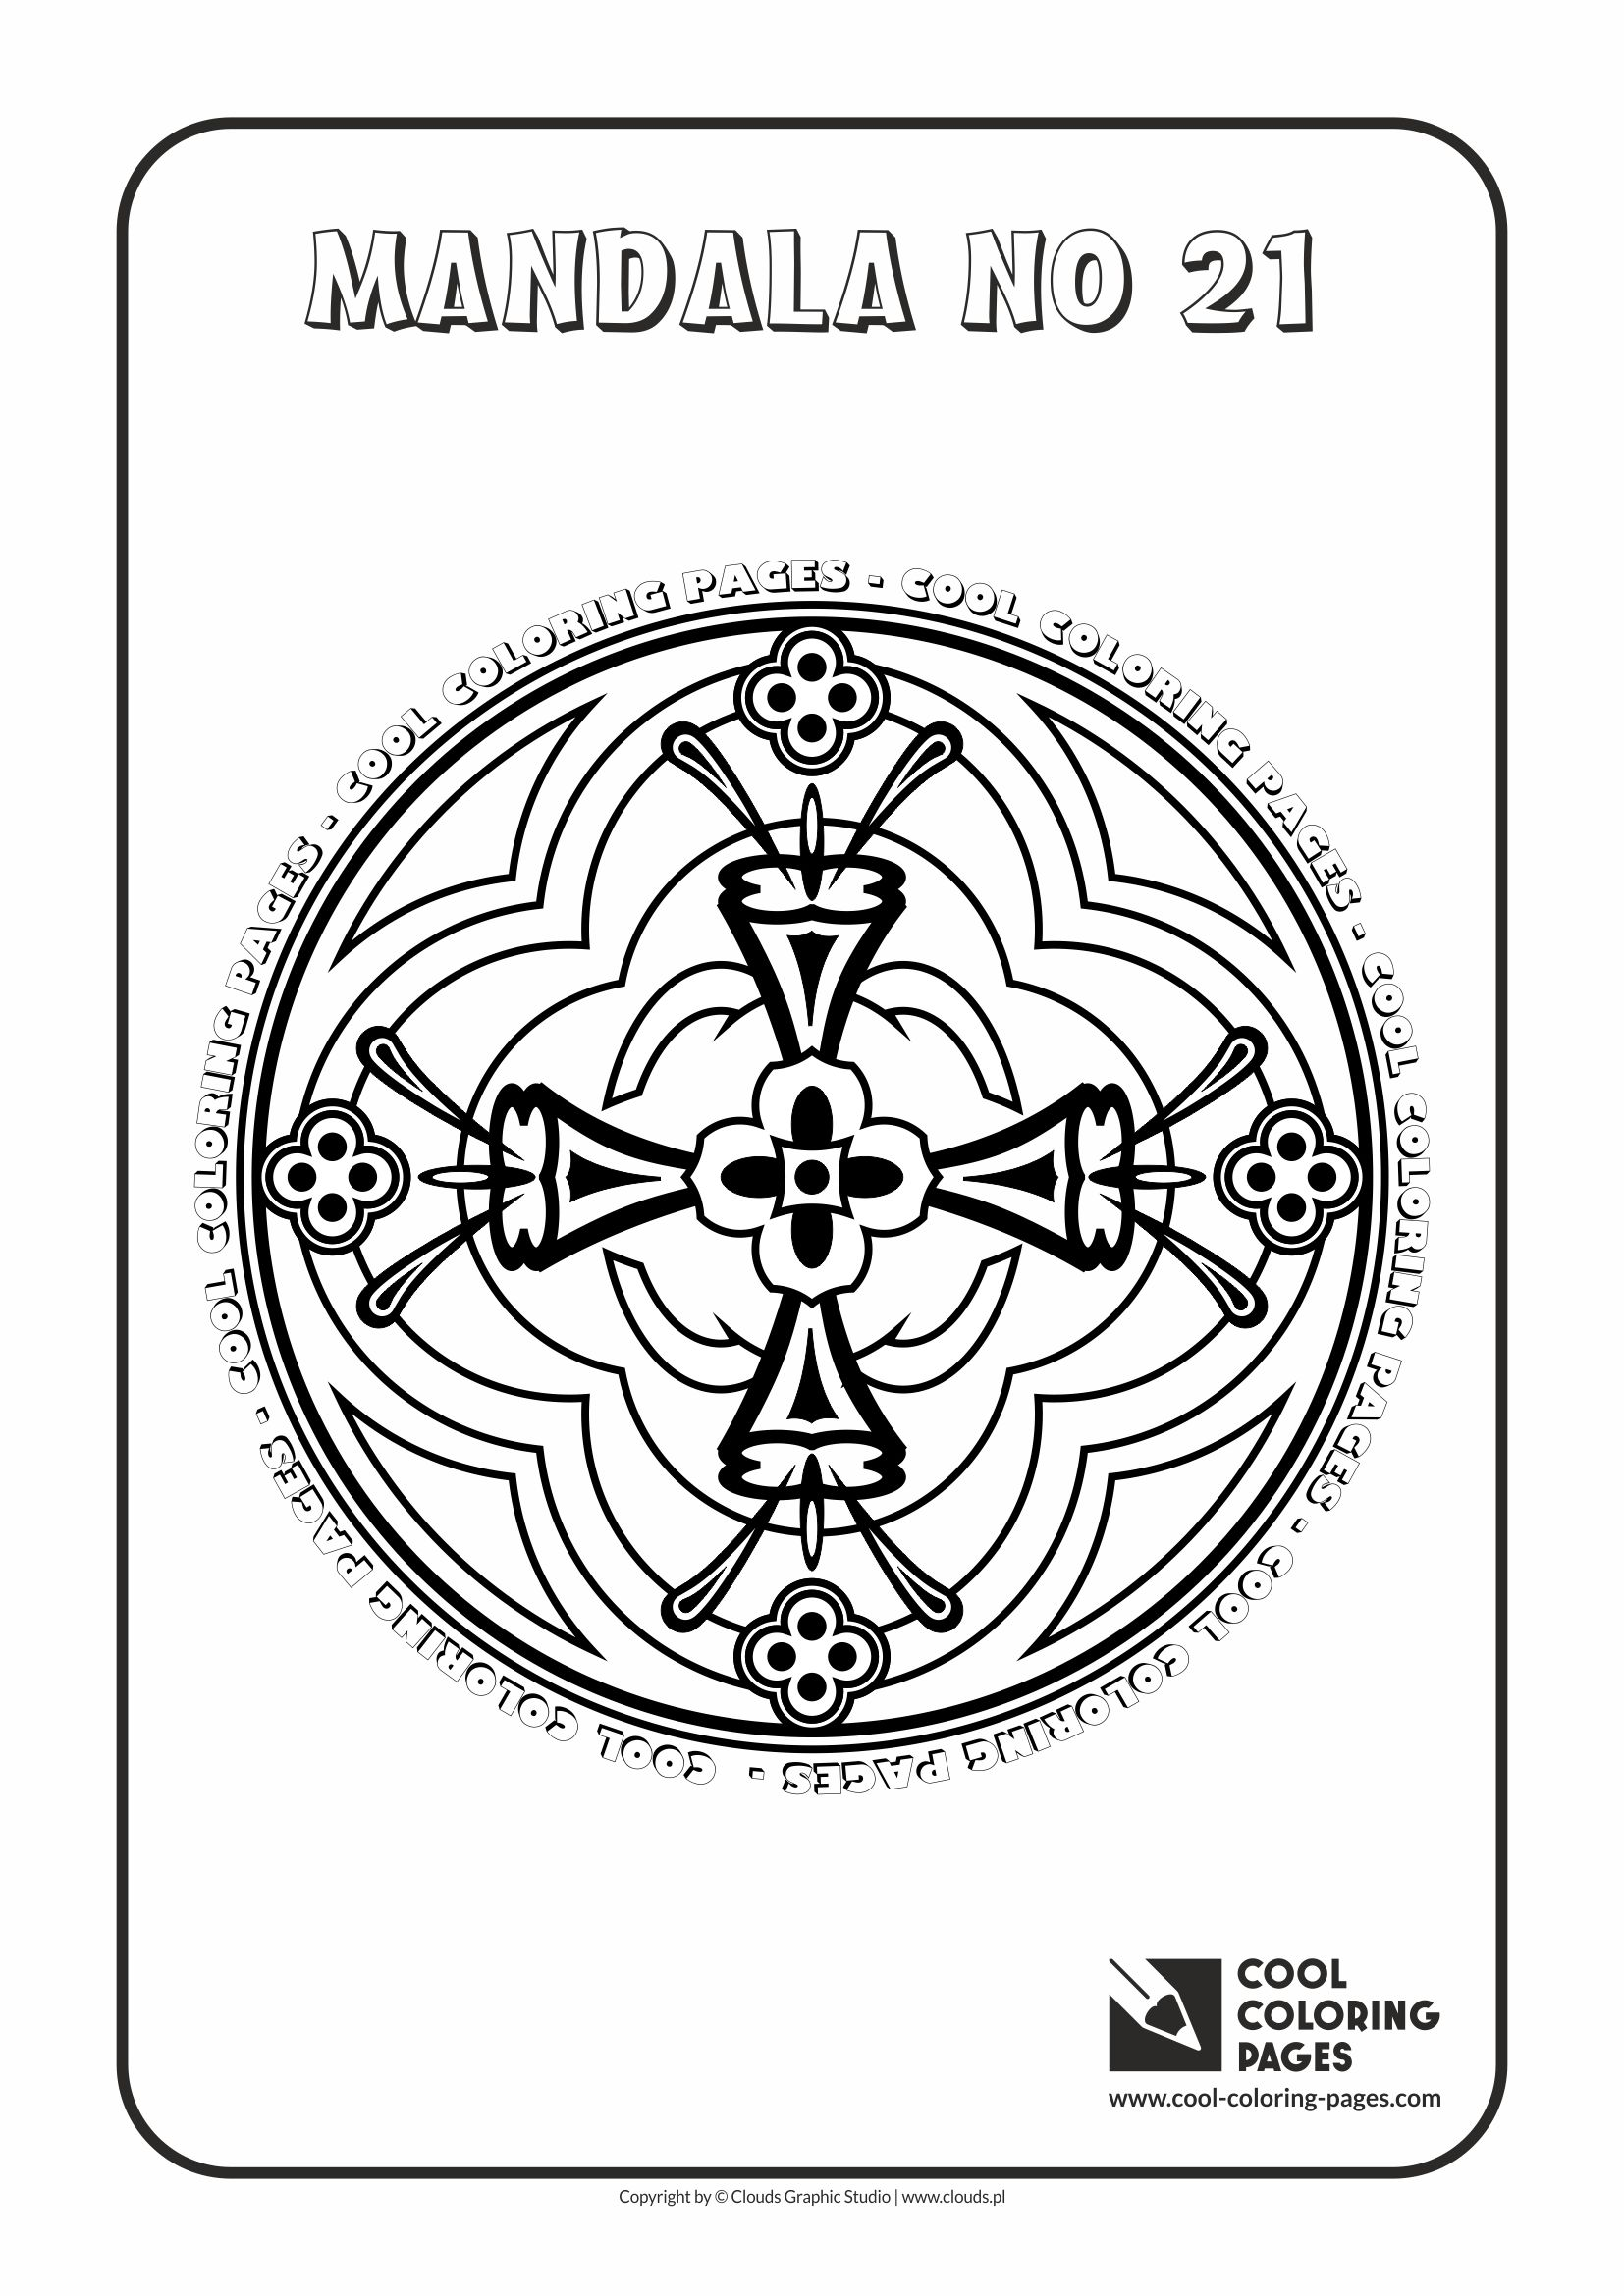 Cool Coloring Pages Mandalas